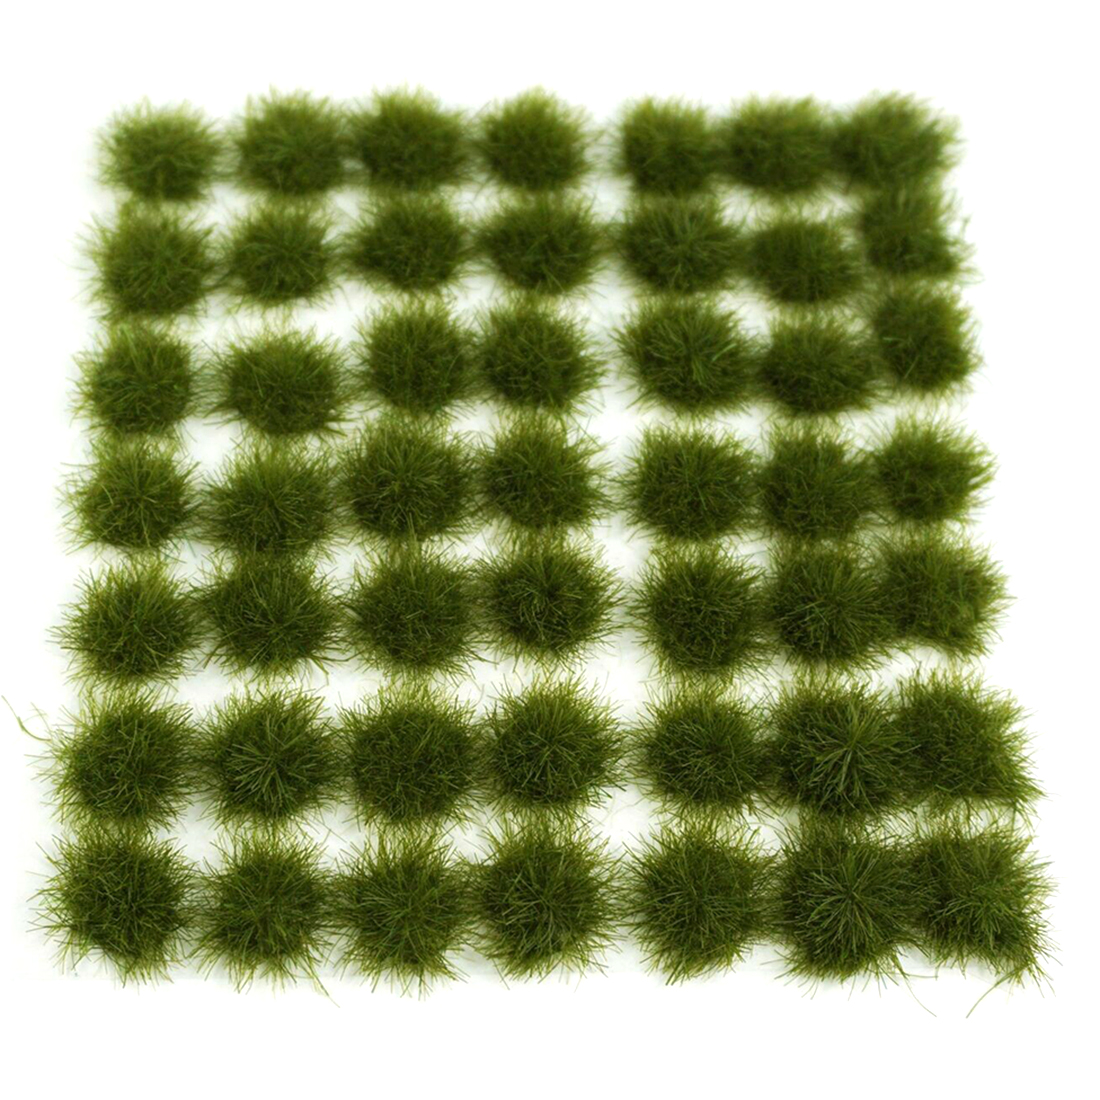 147Pcs Grass Cluster Static Grass Tufts for 1:35 1:48 1:72 1:87 Sand Table Architecture Model - Medium Green image